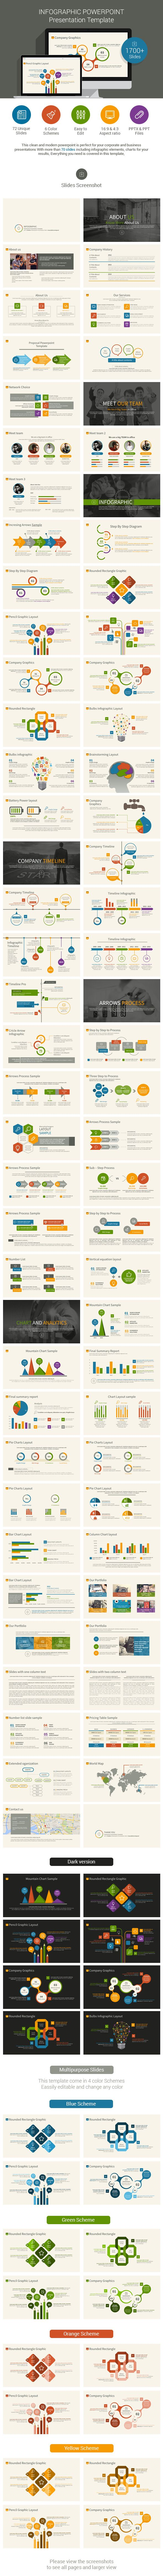 Infographic powerpoint template powerpoint powerpointtemplate infographic powerpoint template powerpoint powerpointtemplate presentation download httpgraphicriver toneelgroepblik Image collections